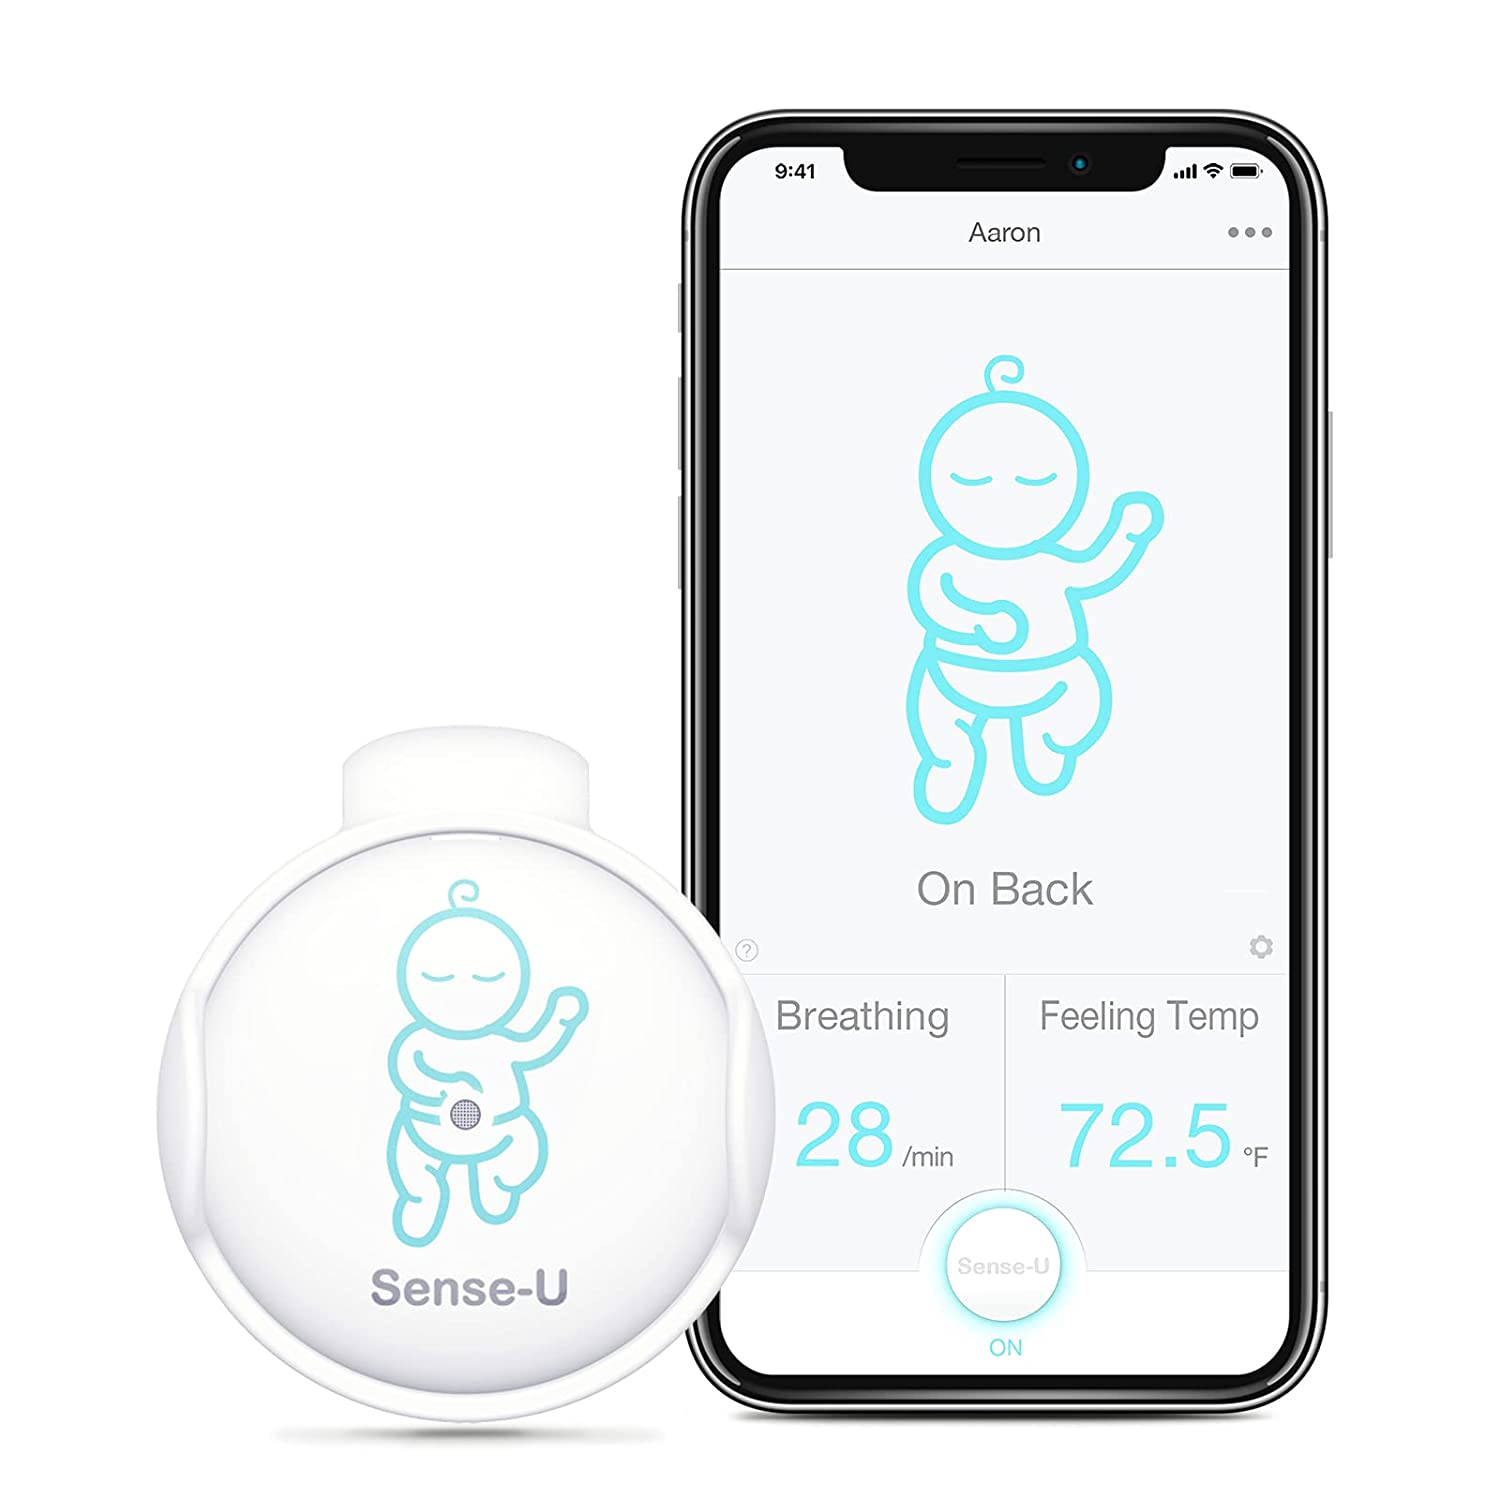 Sense-U Baby Breathing Monitor - HSA/FSA Approved - Tracks Baby's Breathing Movement, Feeling Temperature and Stomach Sleeping for Baby Safety with Audio Alarm on Smartphone (Green)